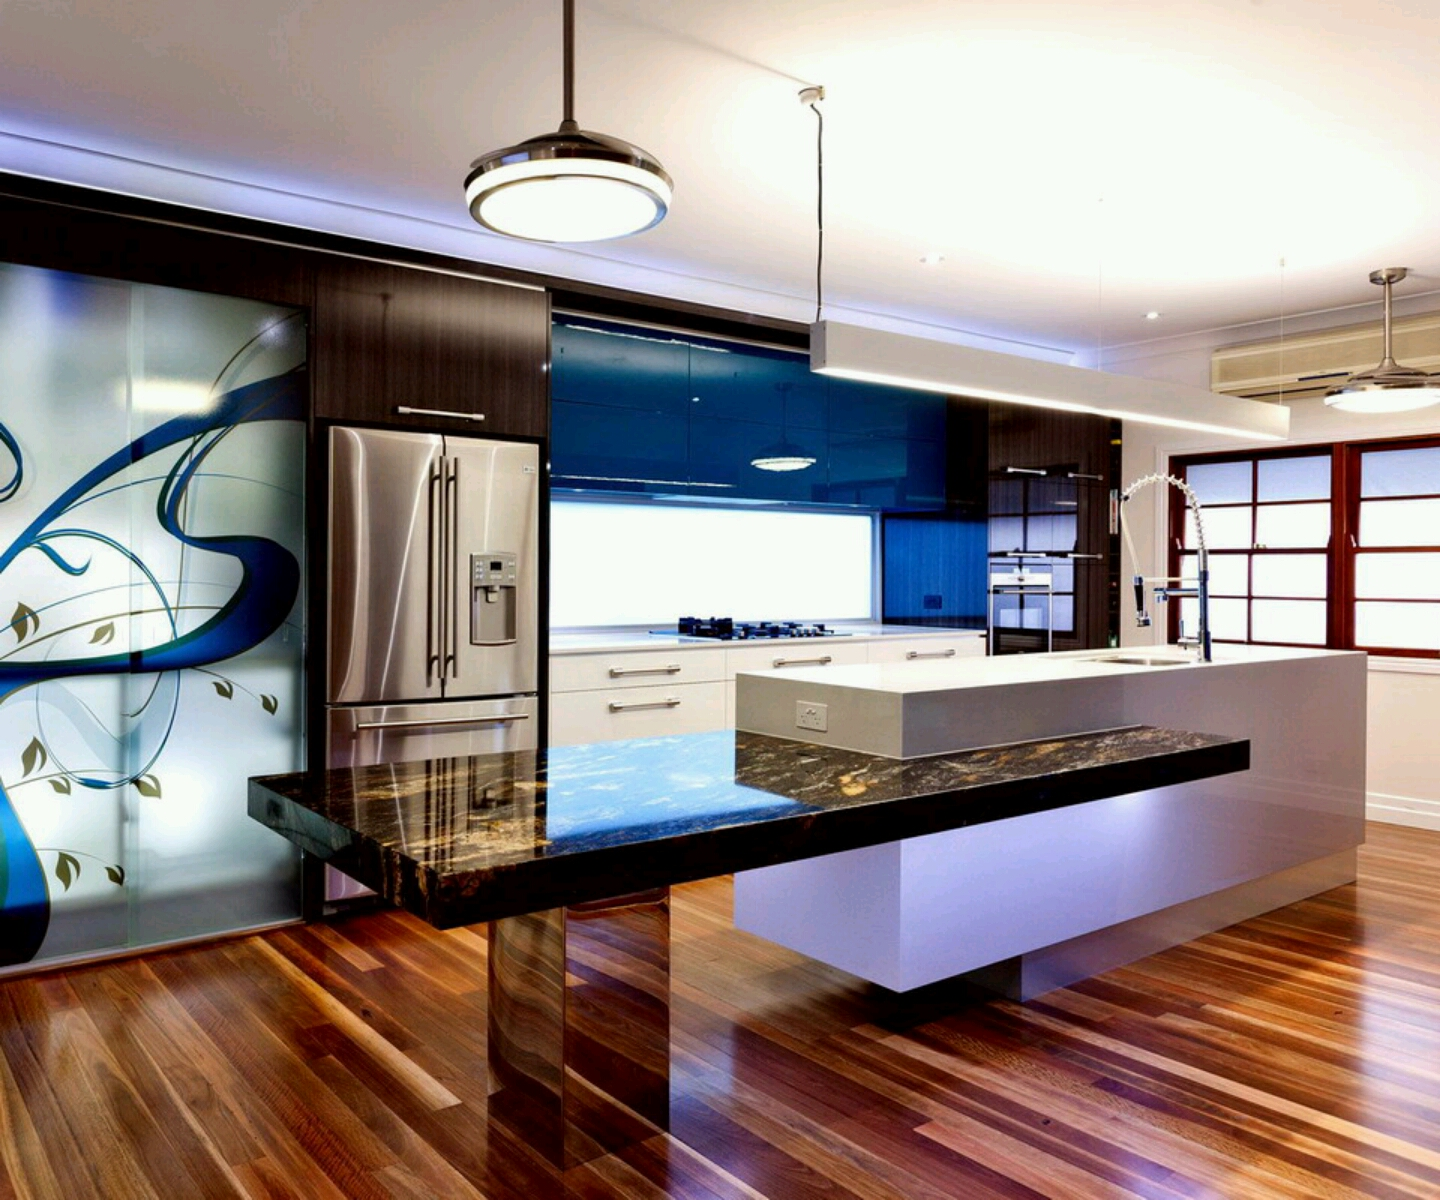 Http Little Blackshop Blogspot Com 2013 11 Modern Kitchen Designs 2013 Html